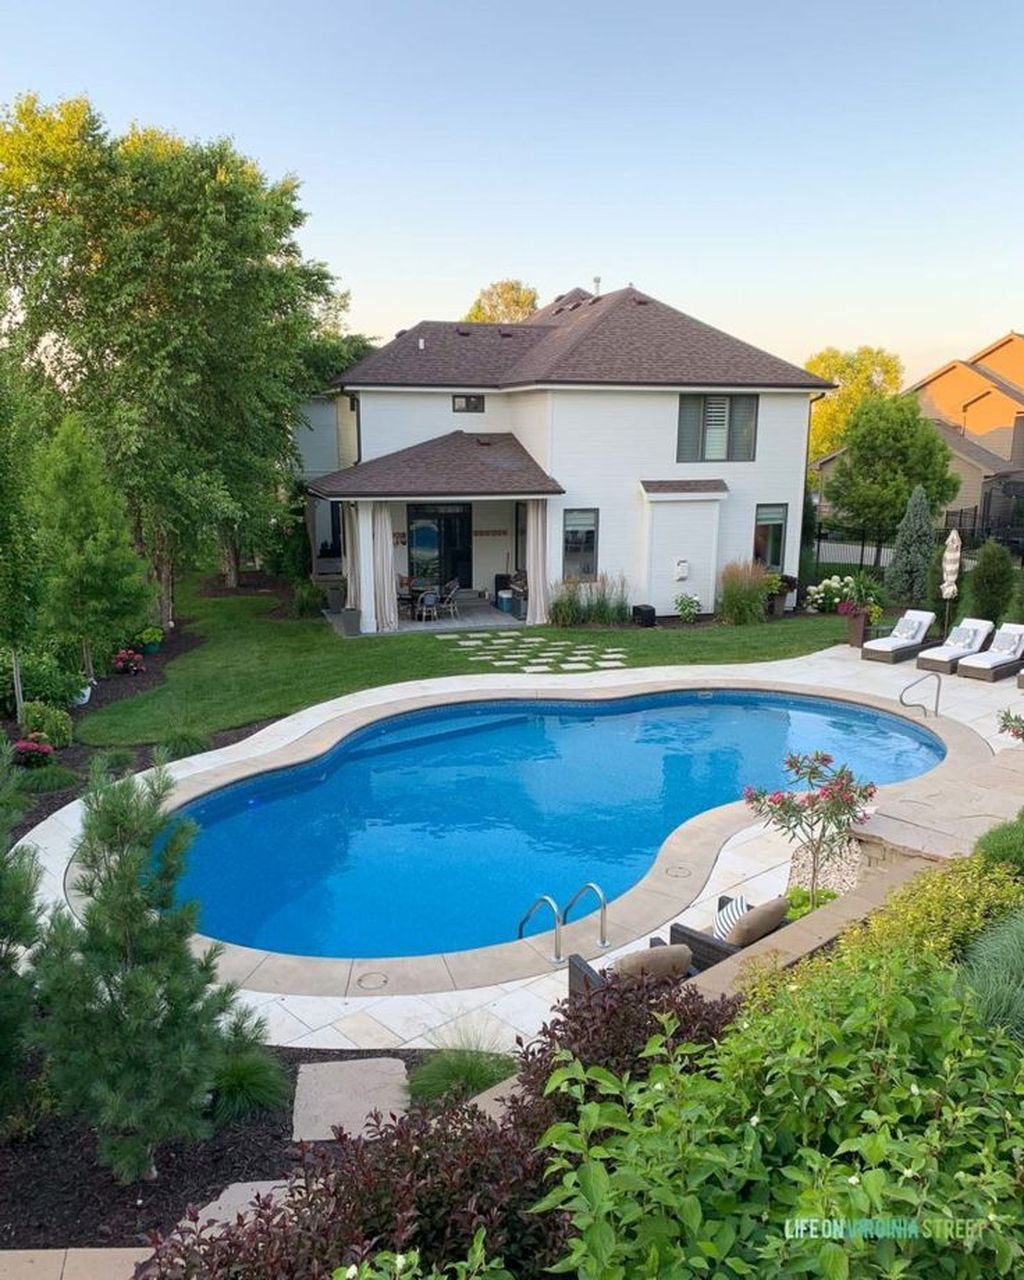 Fabulous Backyard Pool Landscaping Ideas You Never Seen Before 13